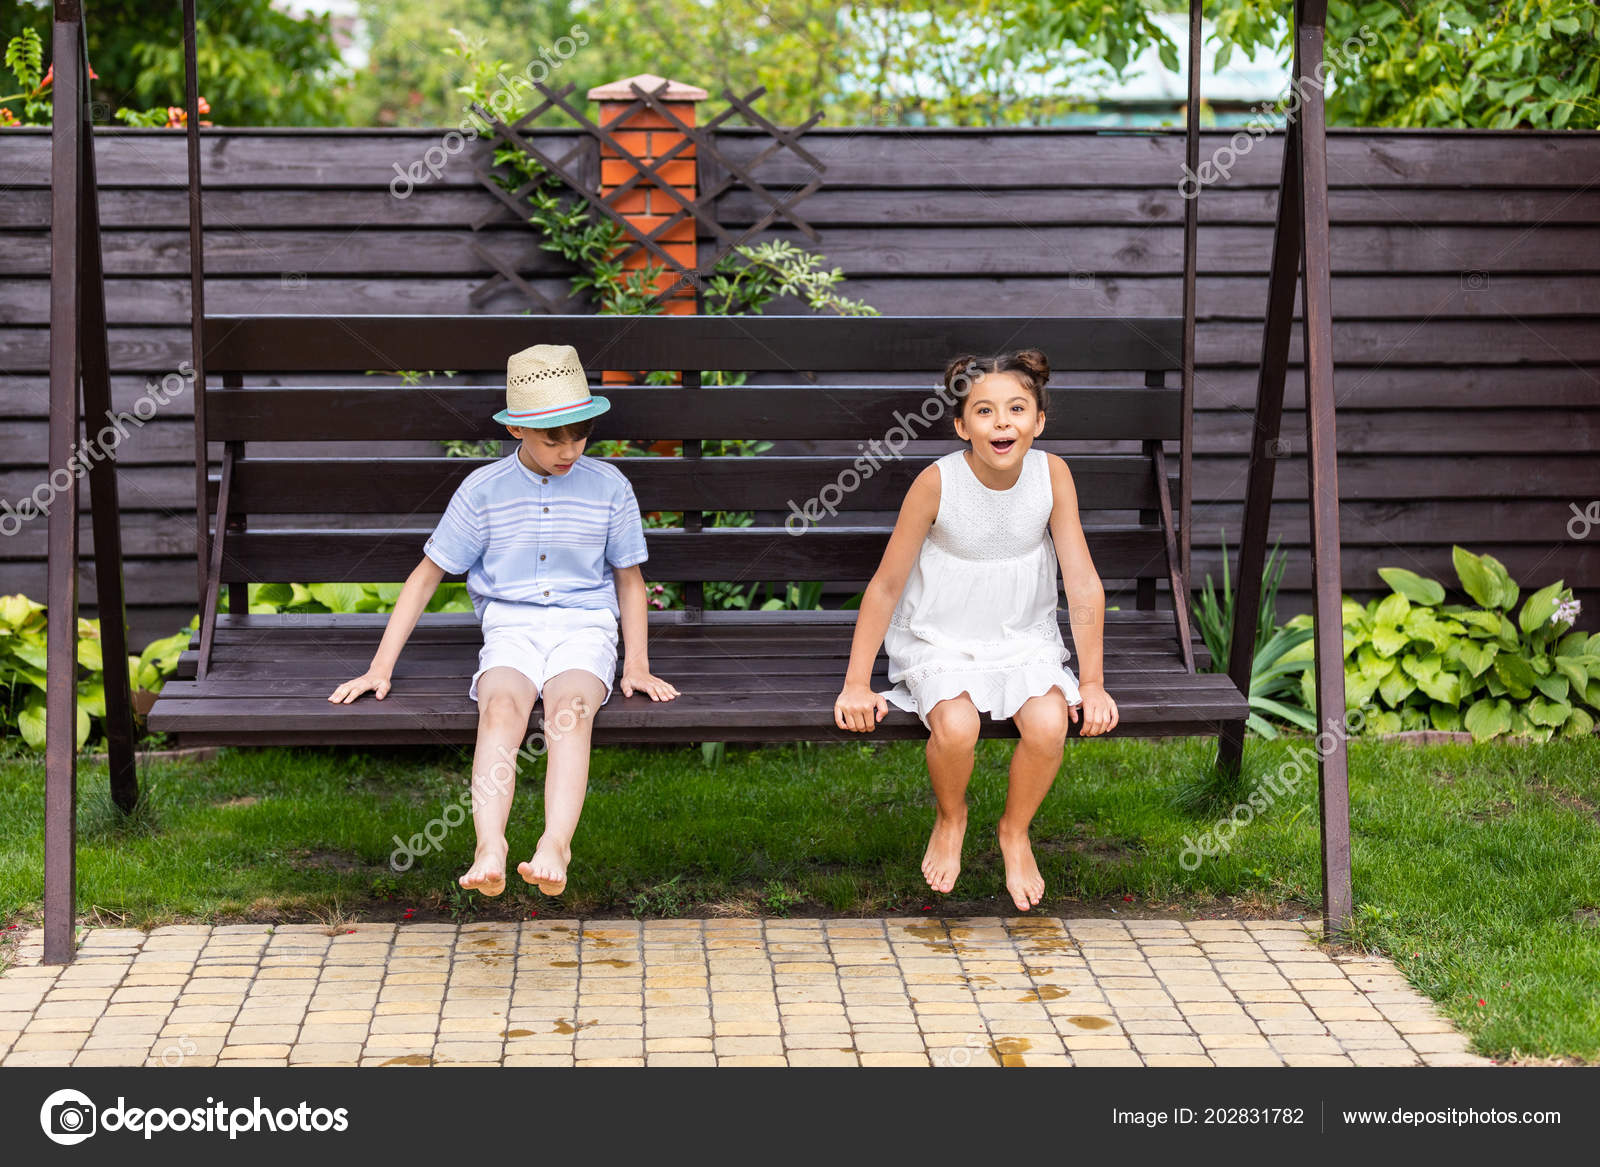 Sensational Cute Kids Sitting Wooden Bench Together Backyard Summer Day Ocoug Best Dining Table And Chair Ideas Images Ocougorg